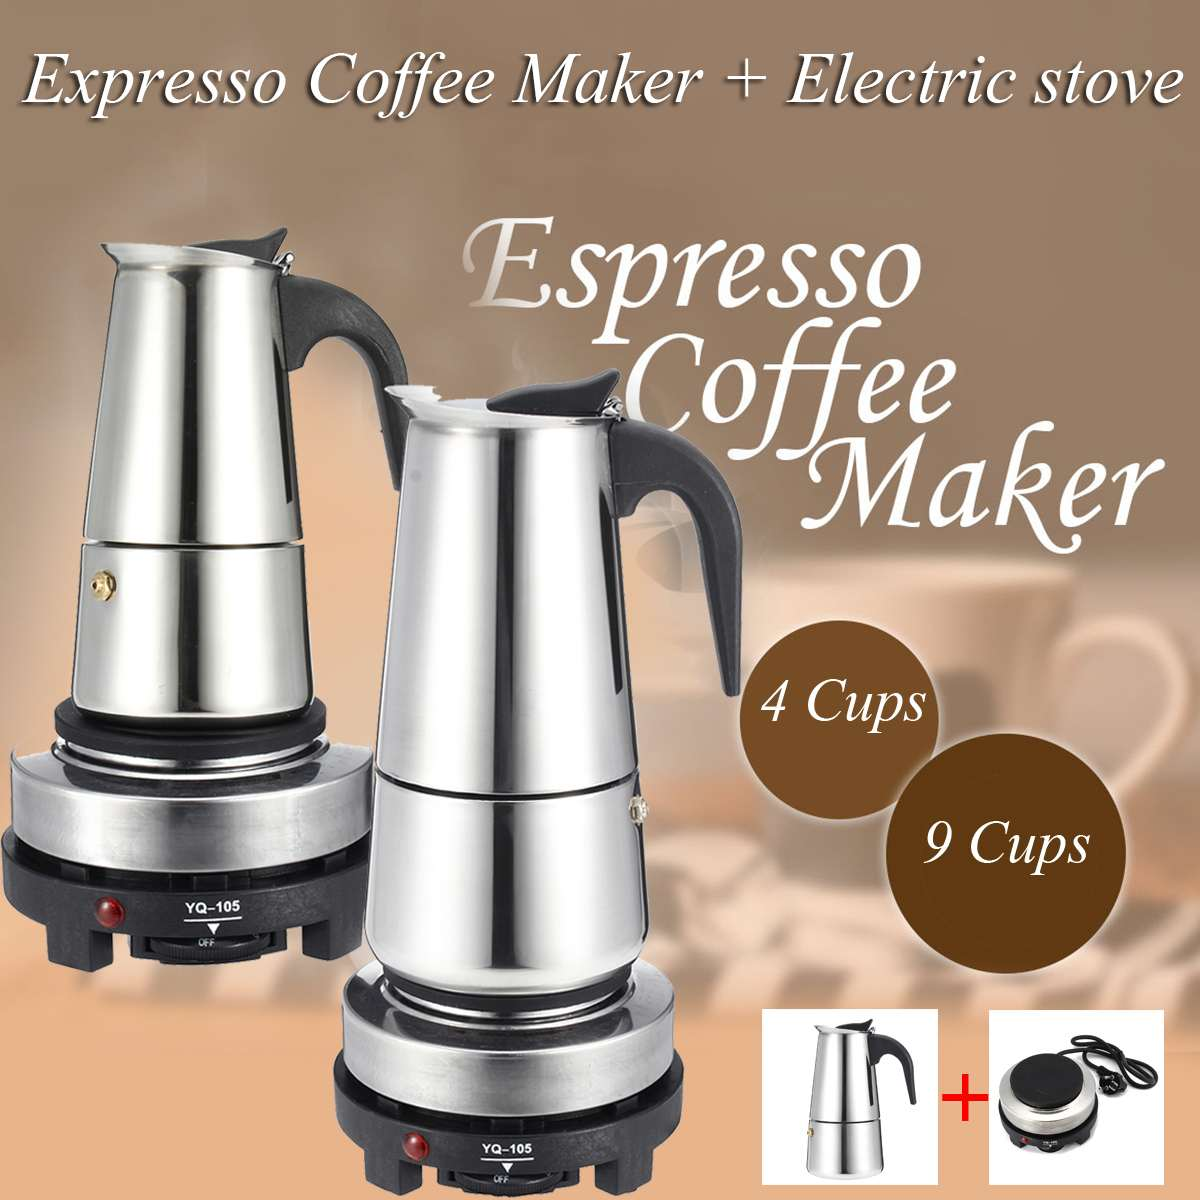 200 450ml font b Portable b font Espresso Coffee Maker Moka Pot Stainless Steel with Electric